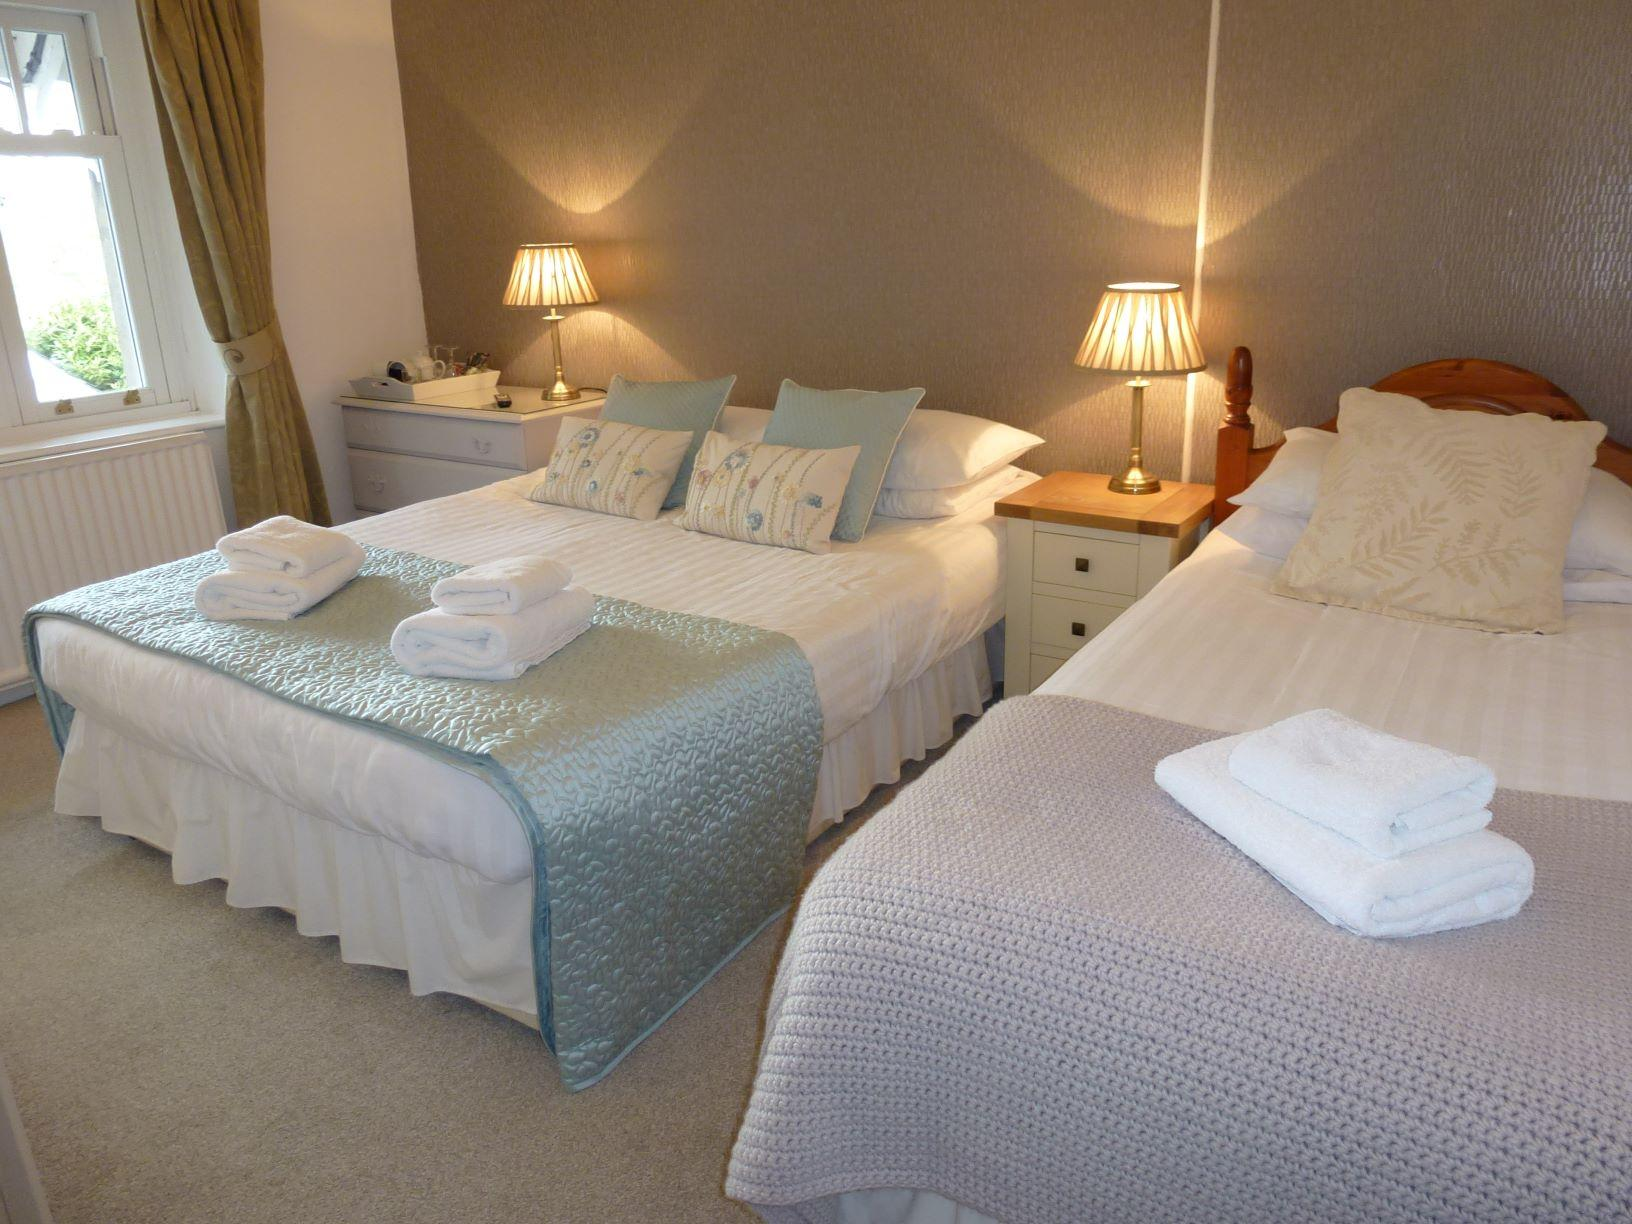 Family Room for 3 people Guest House superior room with lake view en suite bathroom Bassenthwaite near Keswick Lake District